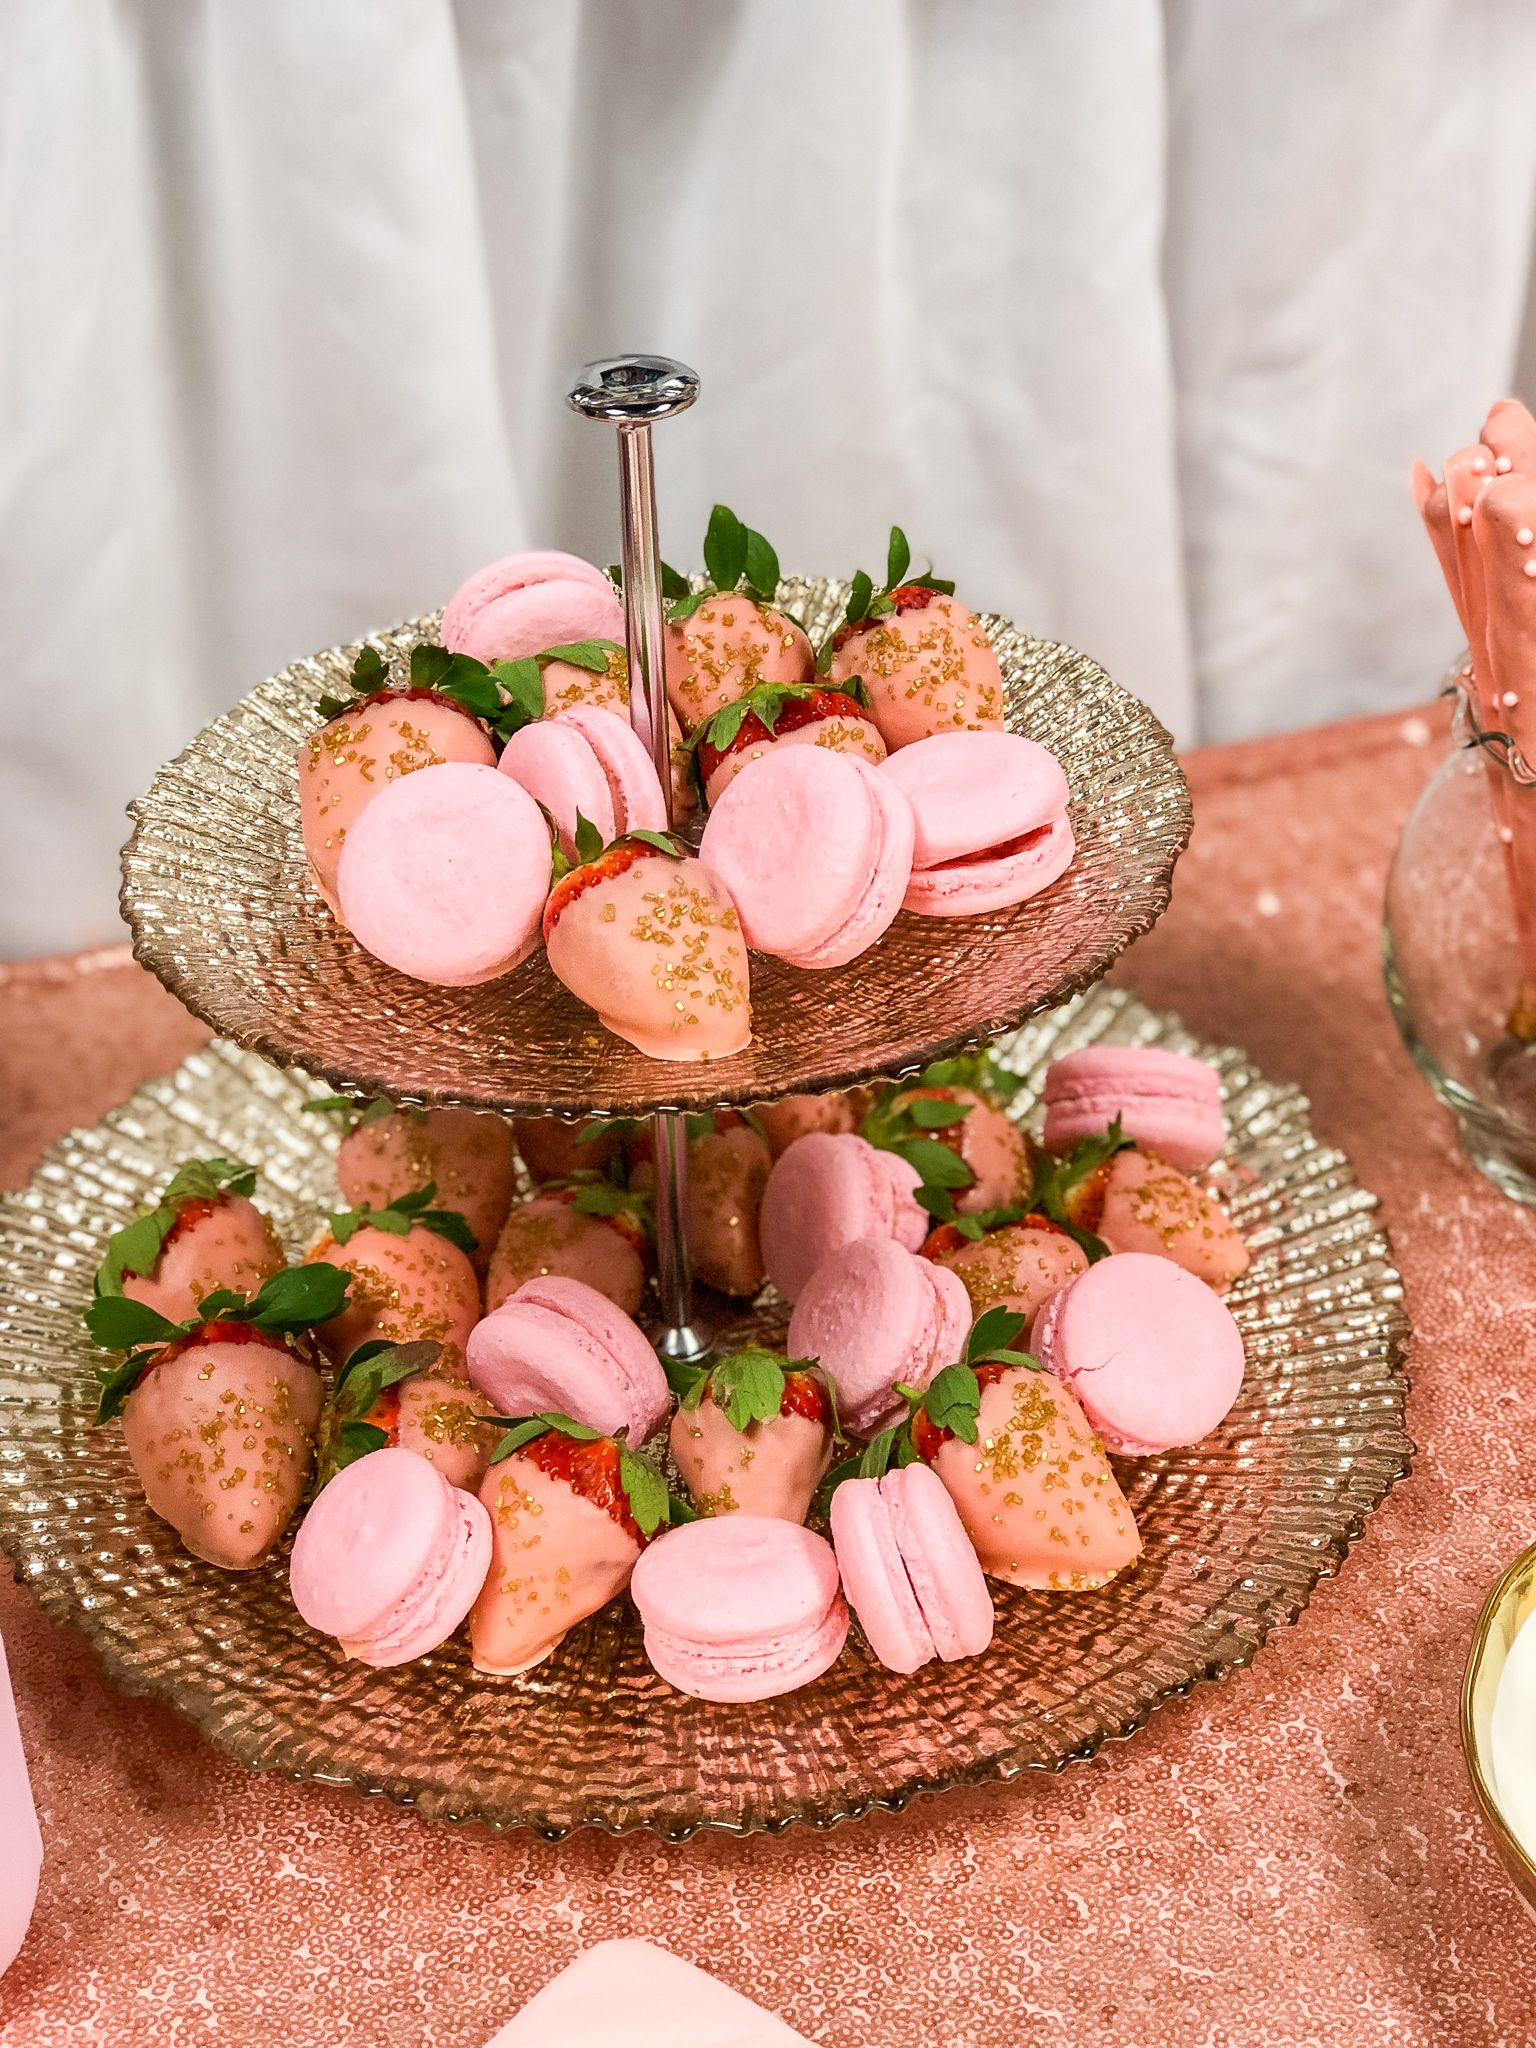 How To Plan The Perfect Sweet 16 Party Pink Dessert Tables Pink Desserts Sweet 16 Parties